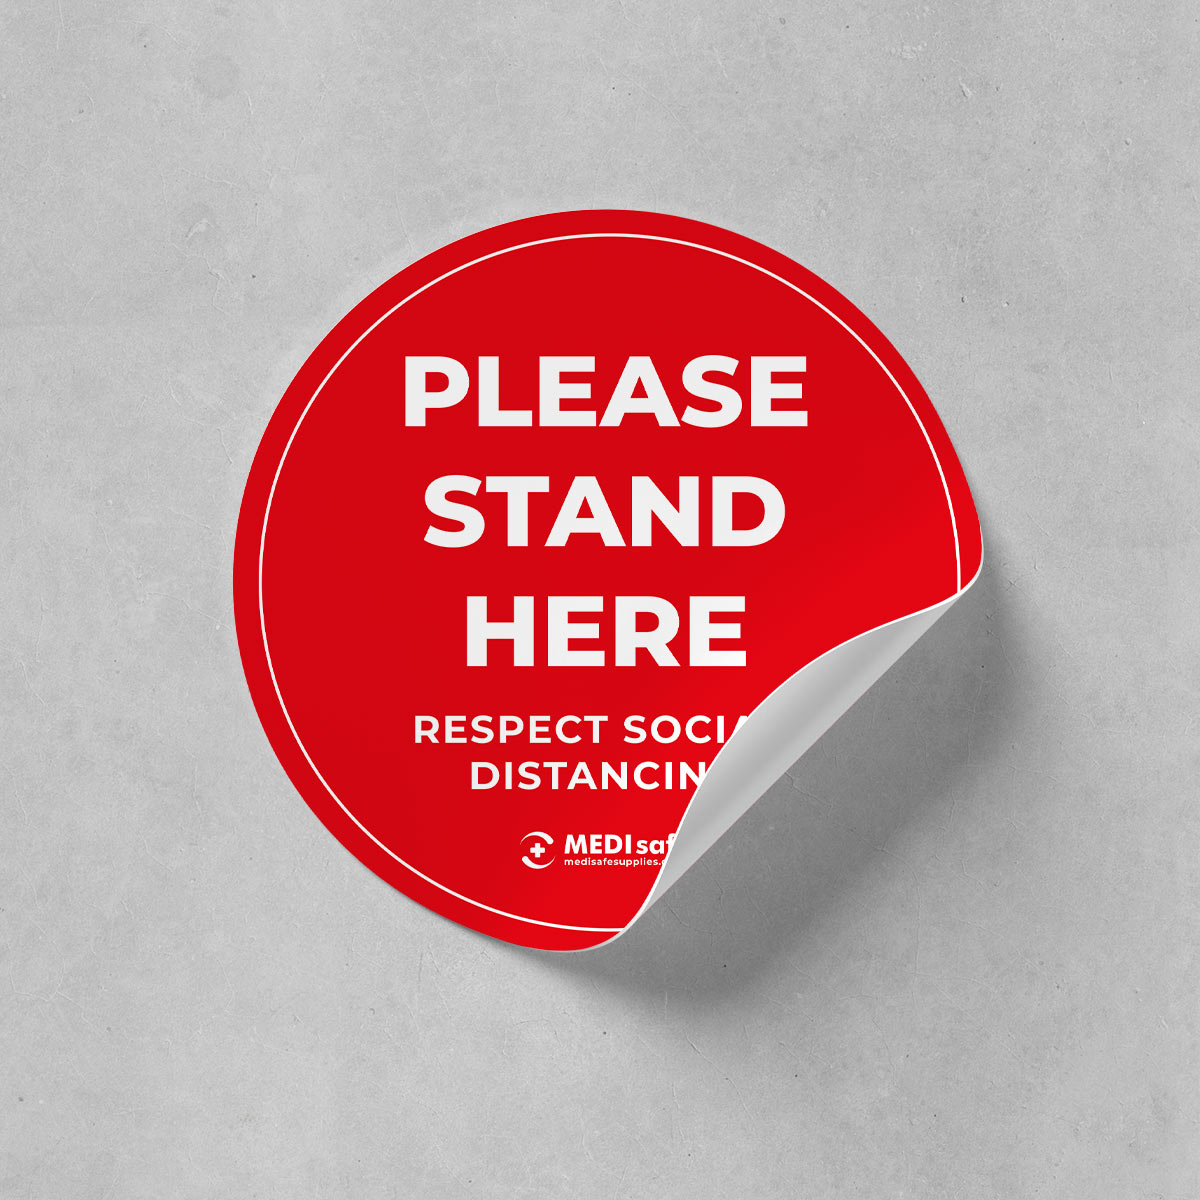 Please stand here respect social distancing covid 19